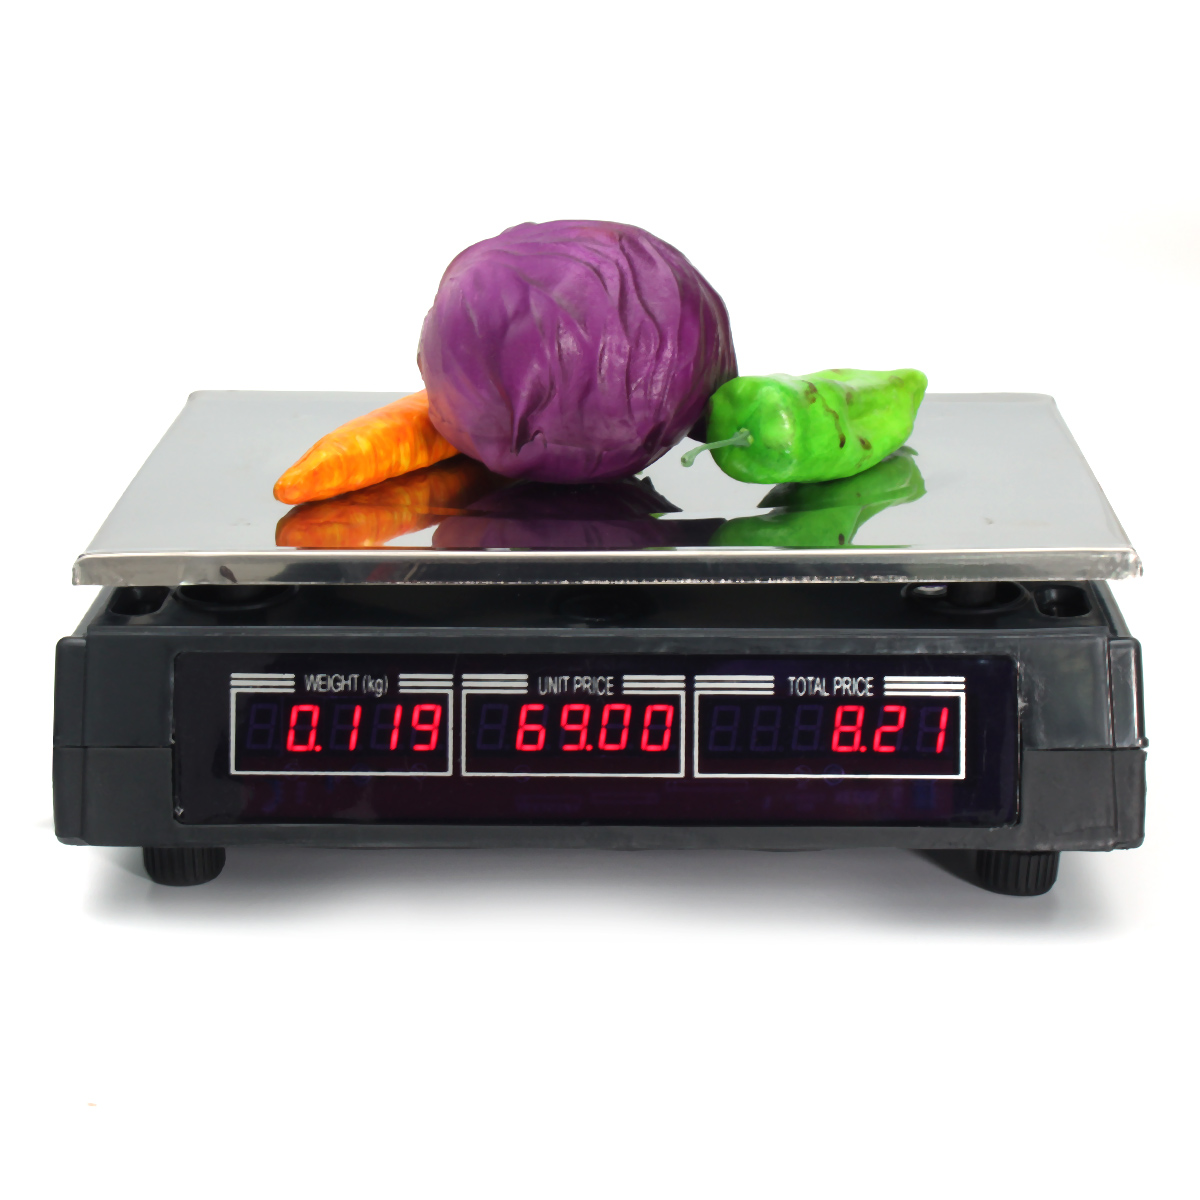 Accurate Low Weight Food Scale